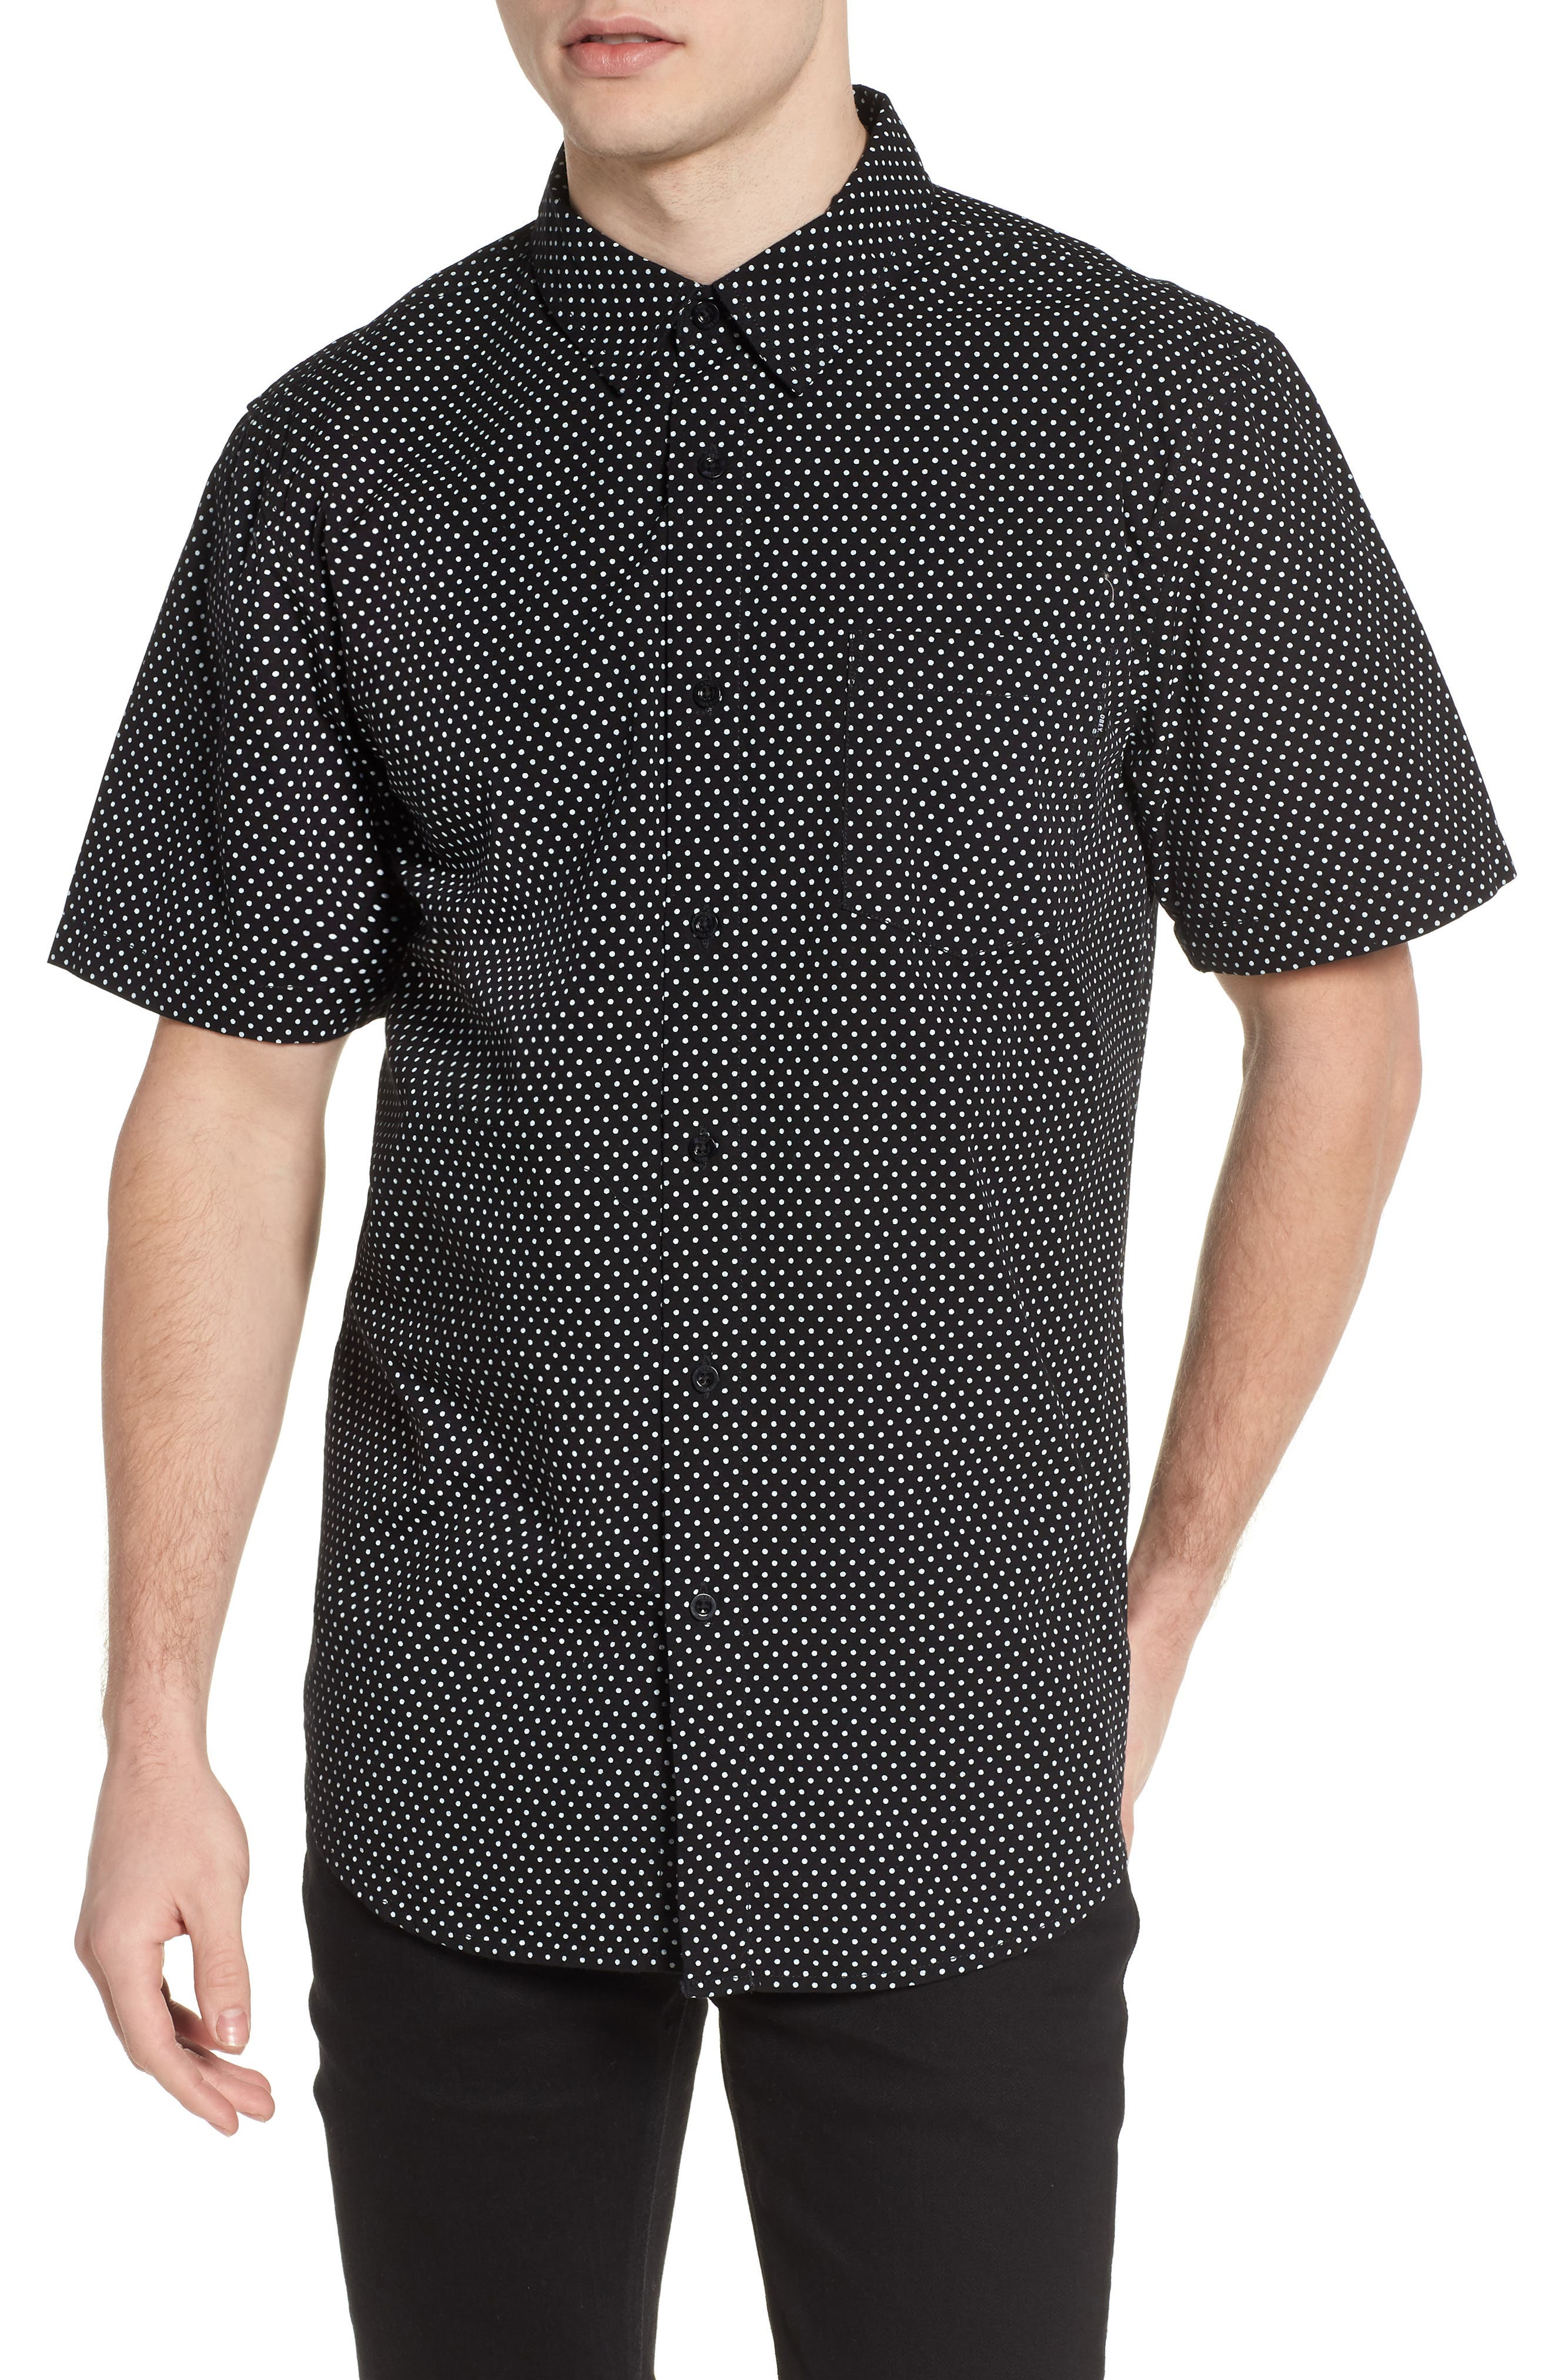 Brozwell Short Sleeve Shirt,                             Main thumbnail 1, color,                             Black Multi